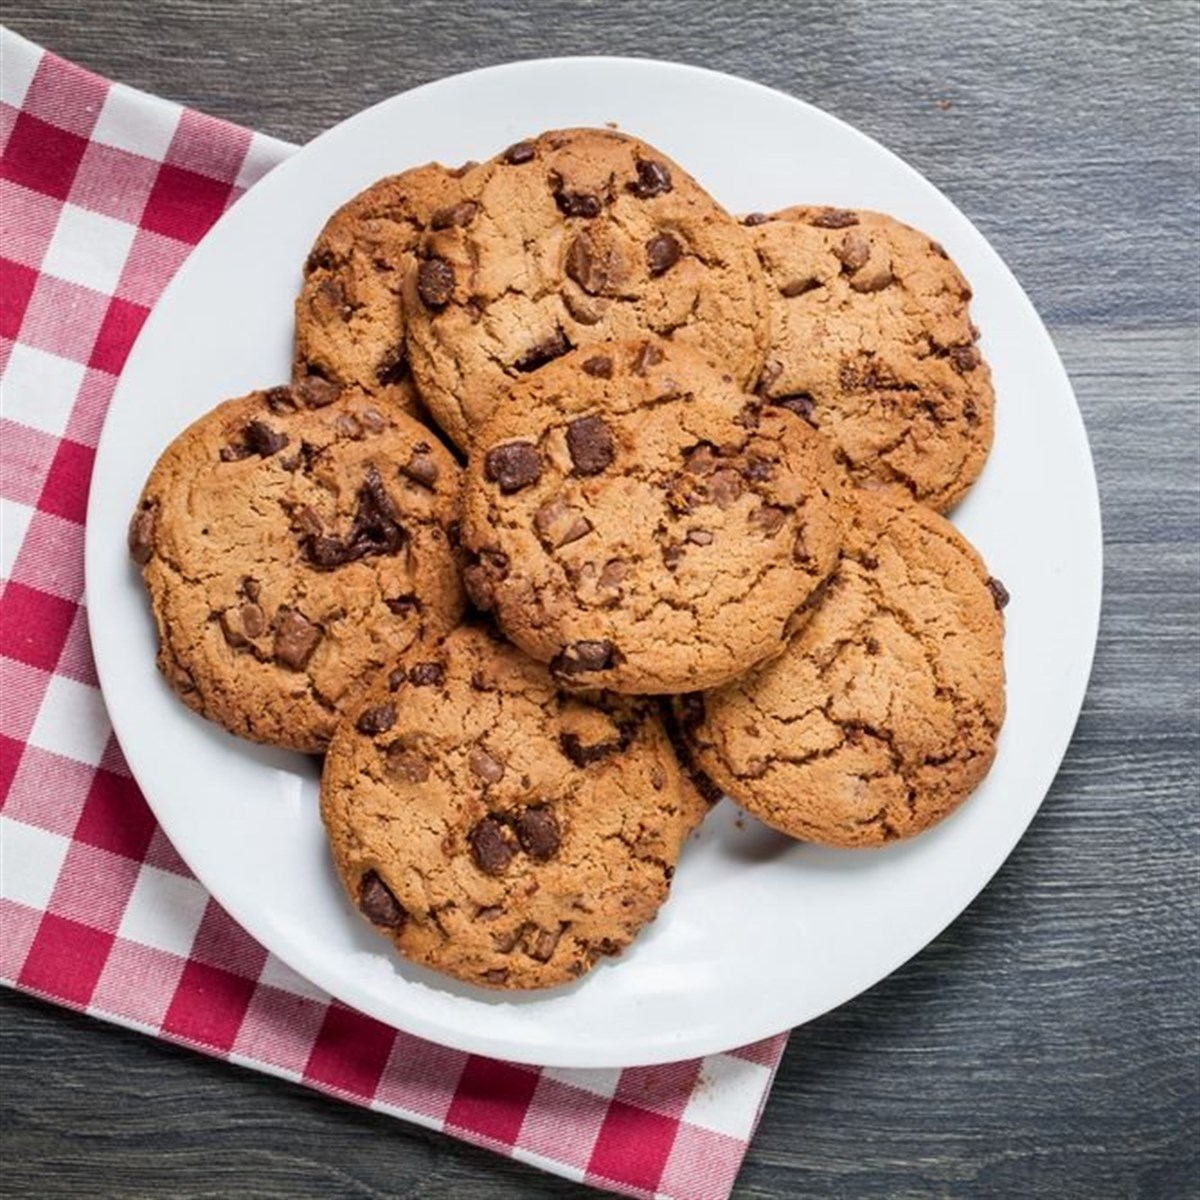 how to bake chocolate chip cookies essay How to make chewy chocolate chip cookies chocolate chip cookies are considered by some to be one of the best types of cookies around if you're looking for a chewy cookie rather than a crunchy one, you will love the cookies made following.